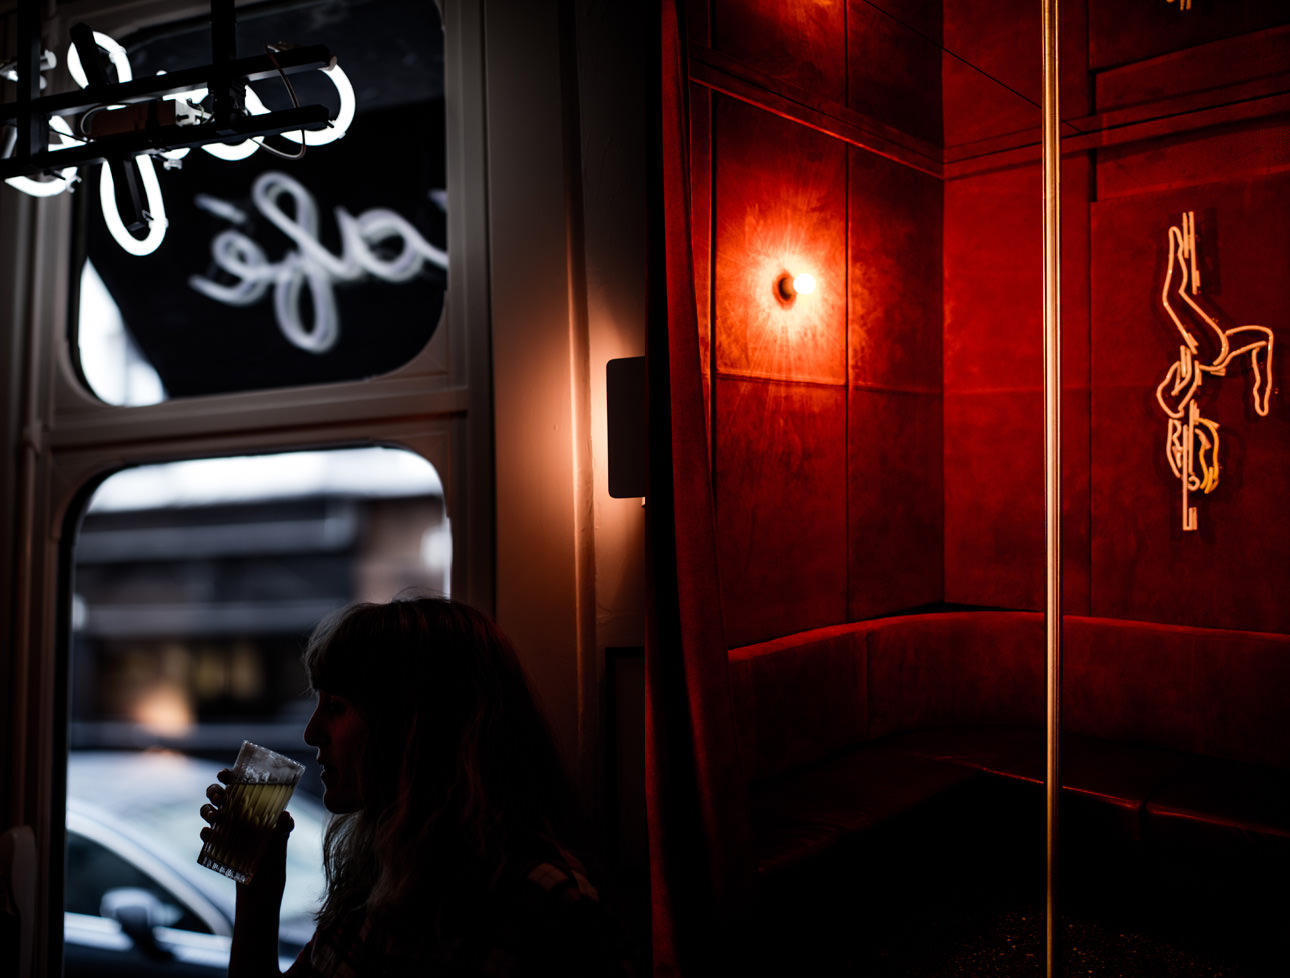 le-pigalle-hotel-cafe-nightlife-paris